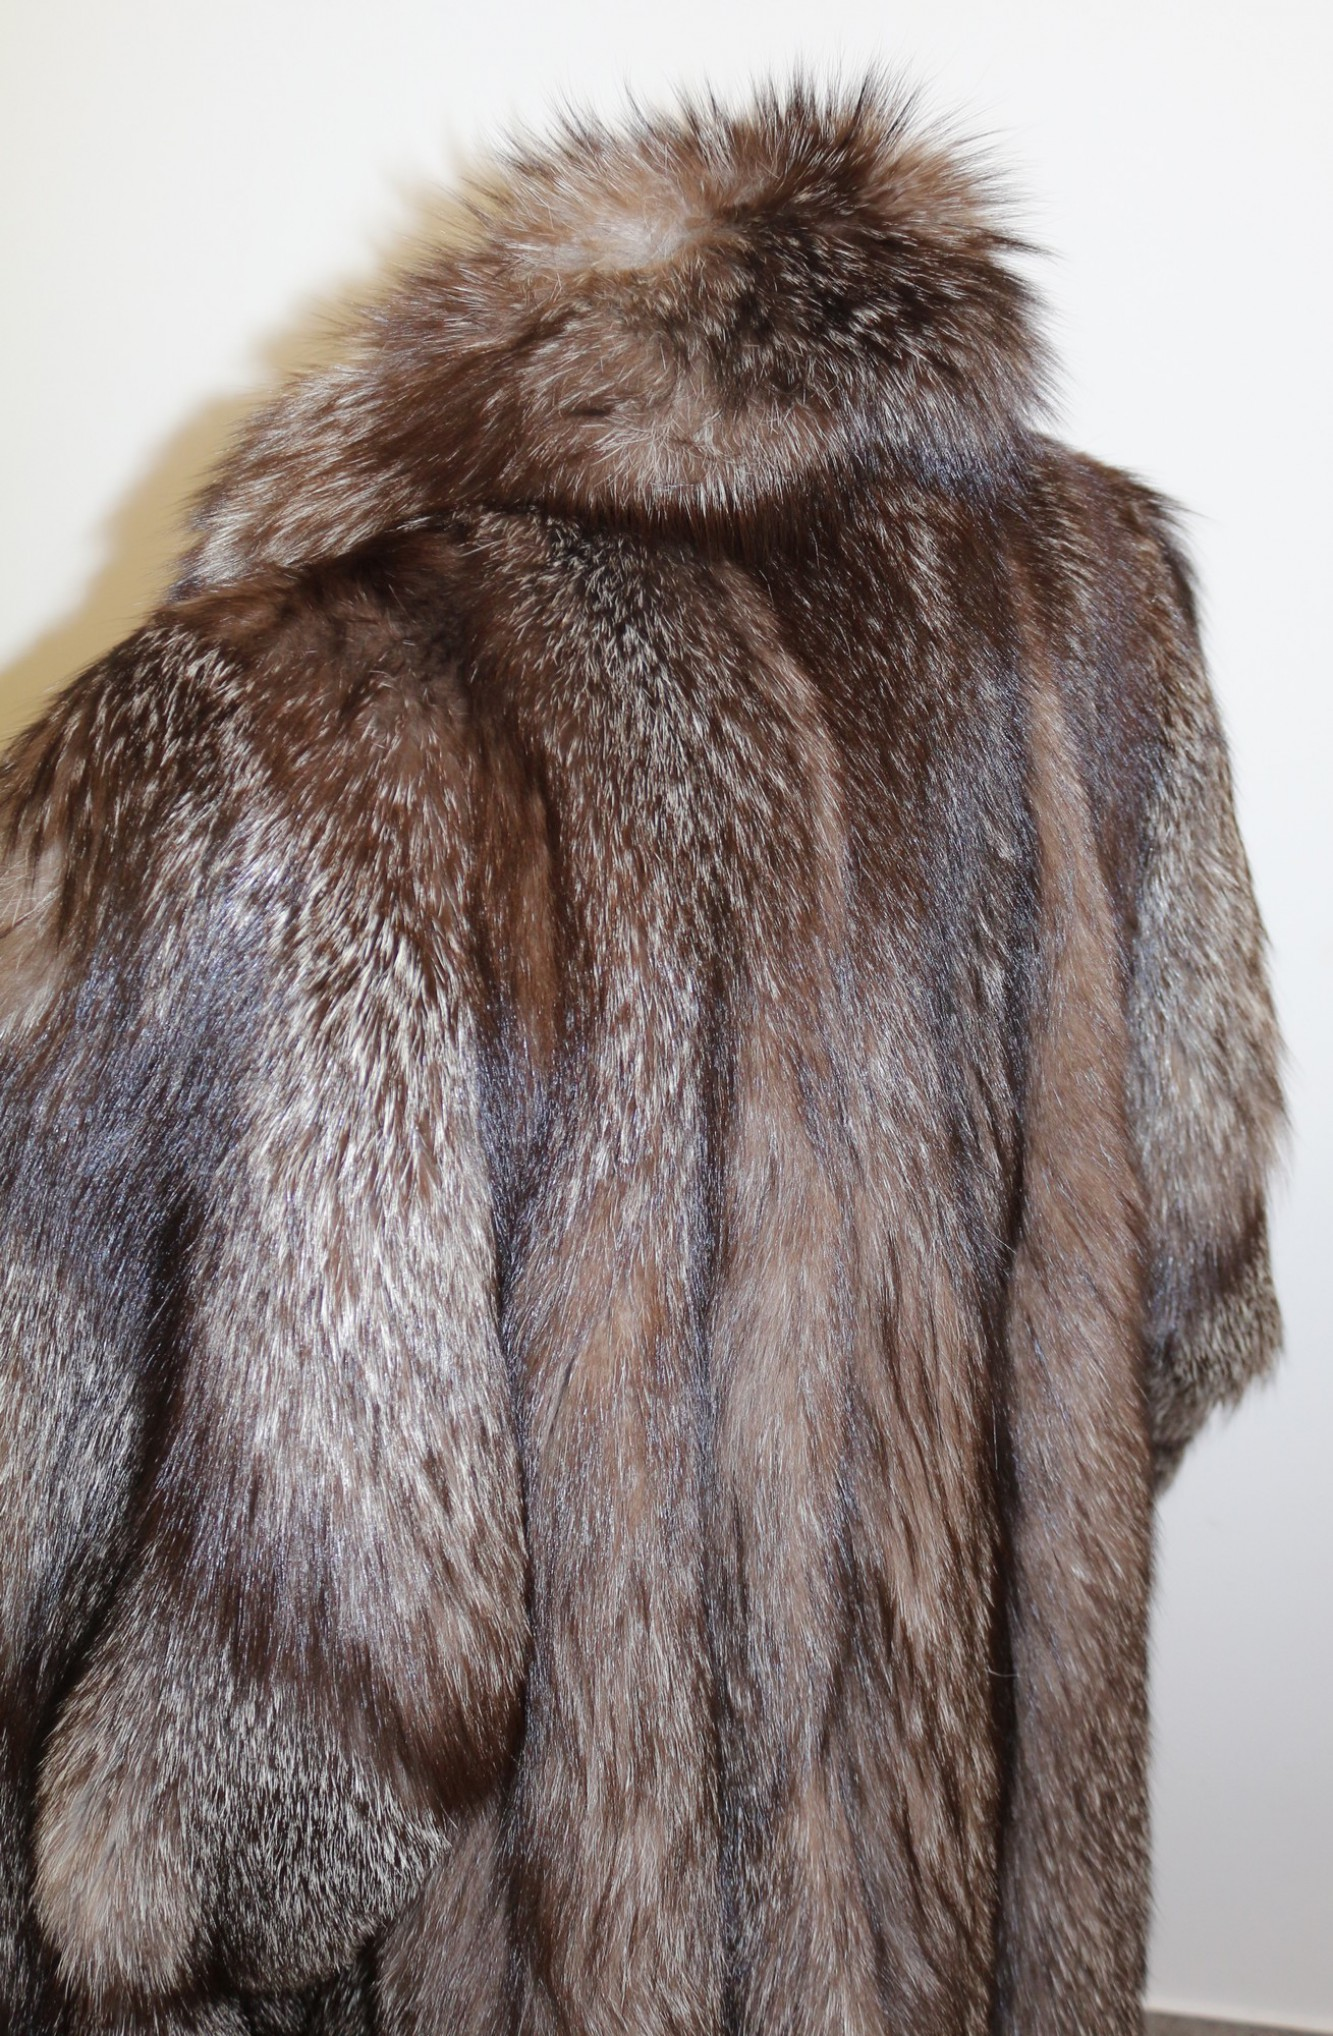 Buy fuchsmantel silver fox coat real fur coat online at your furs online shop - Bilder fur wohnungsdekoration ...